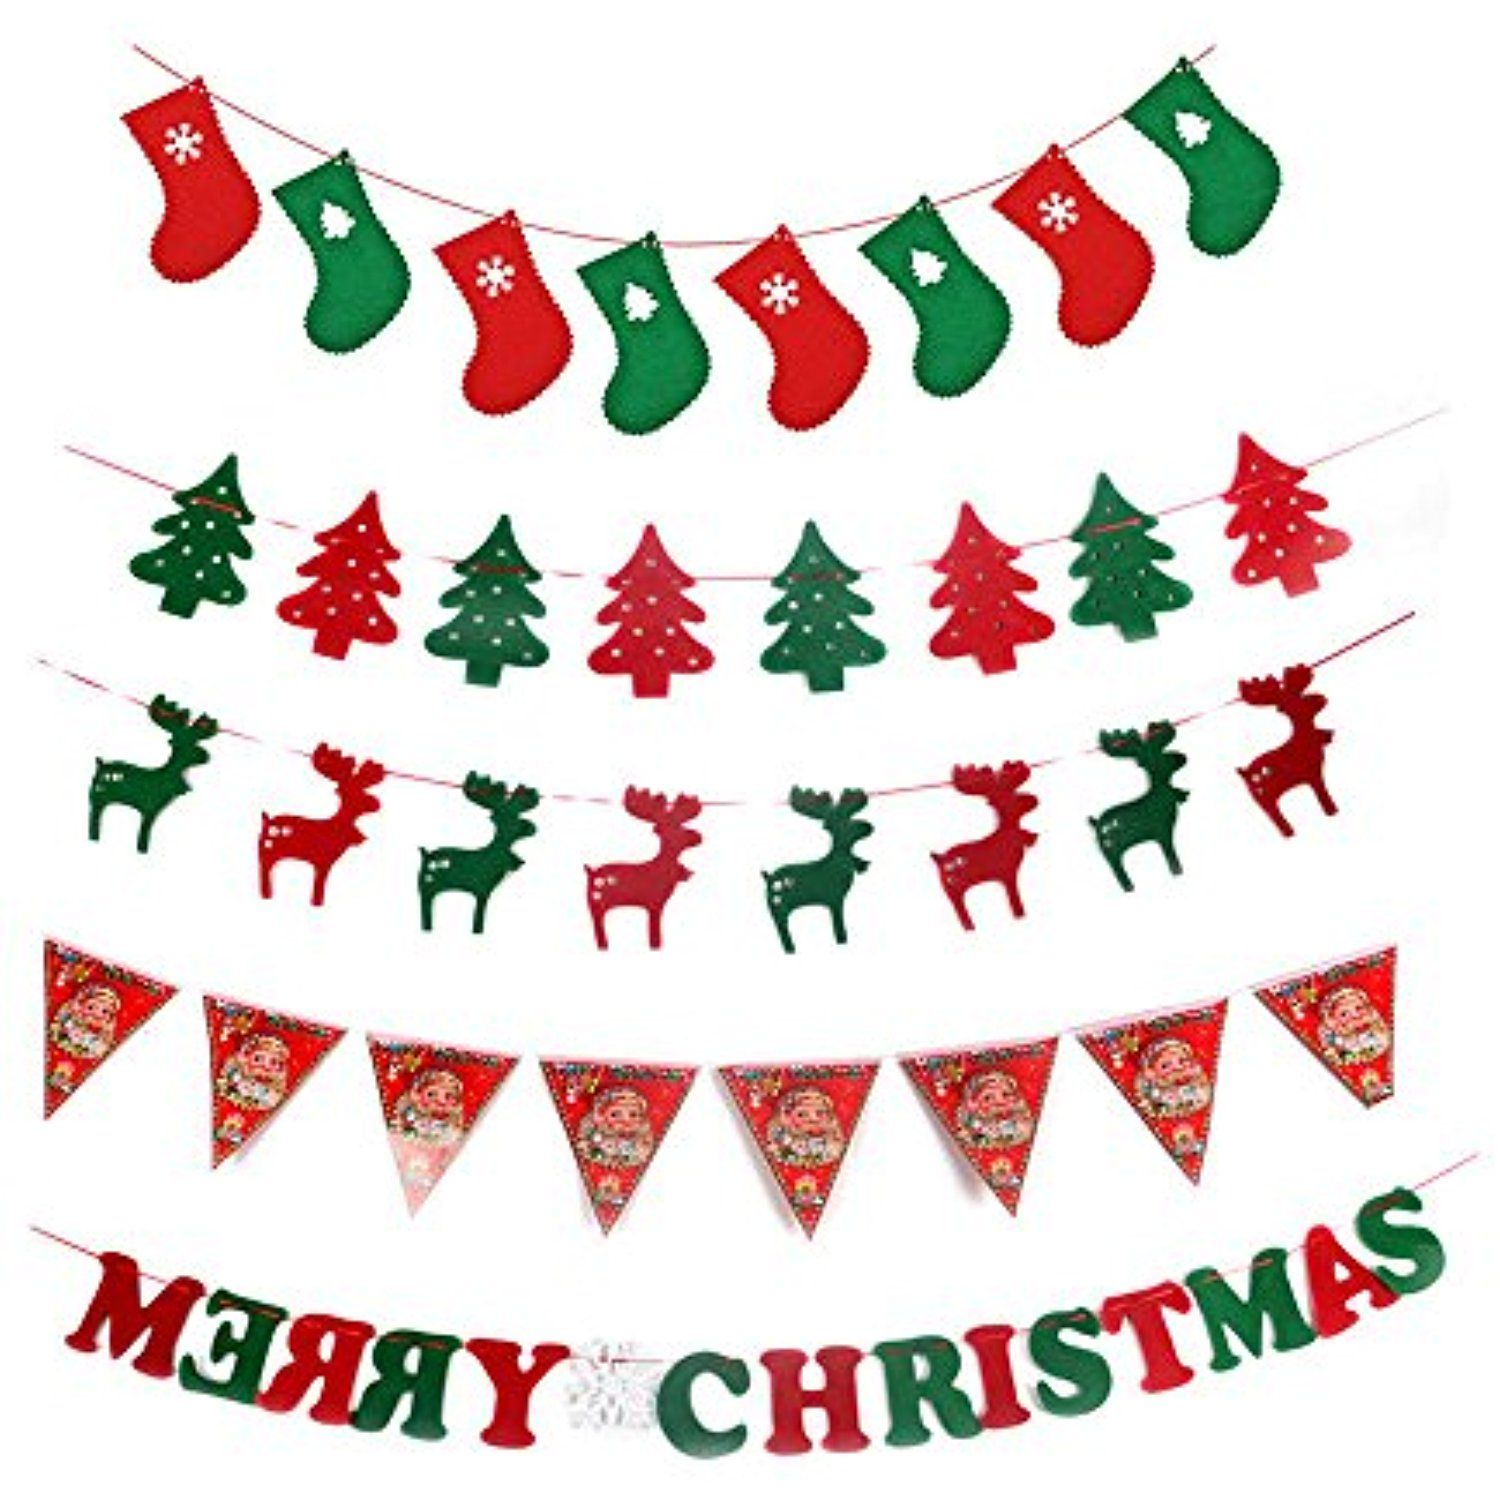 Christmas Banners Hanging Tree Elk Stockings Flags Merry Christmas